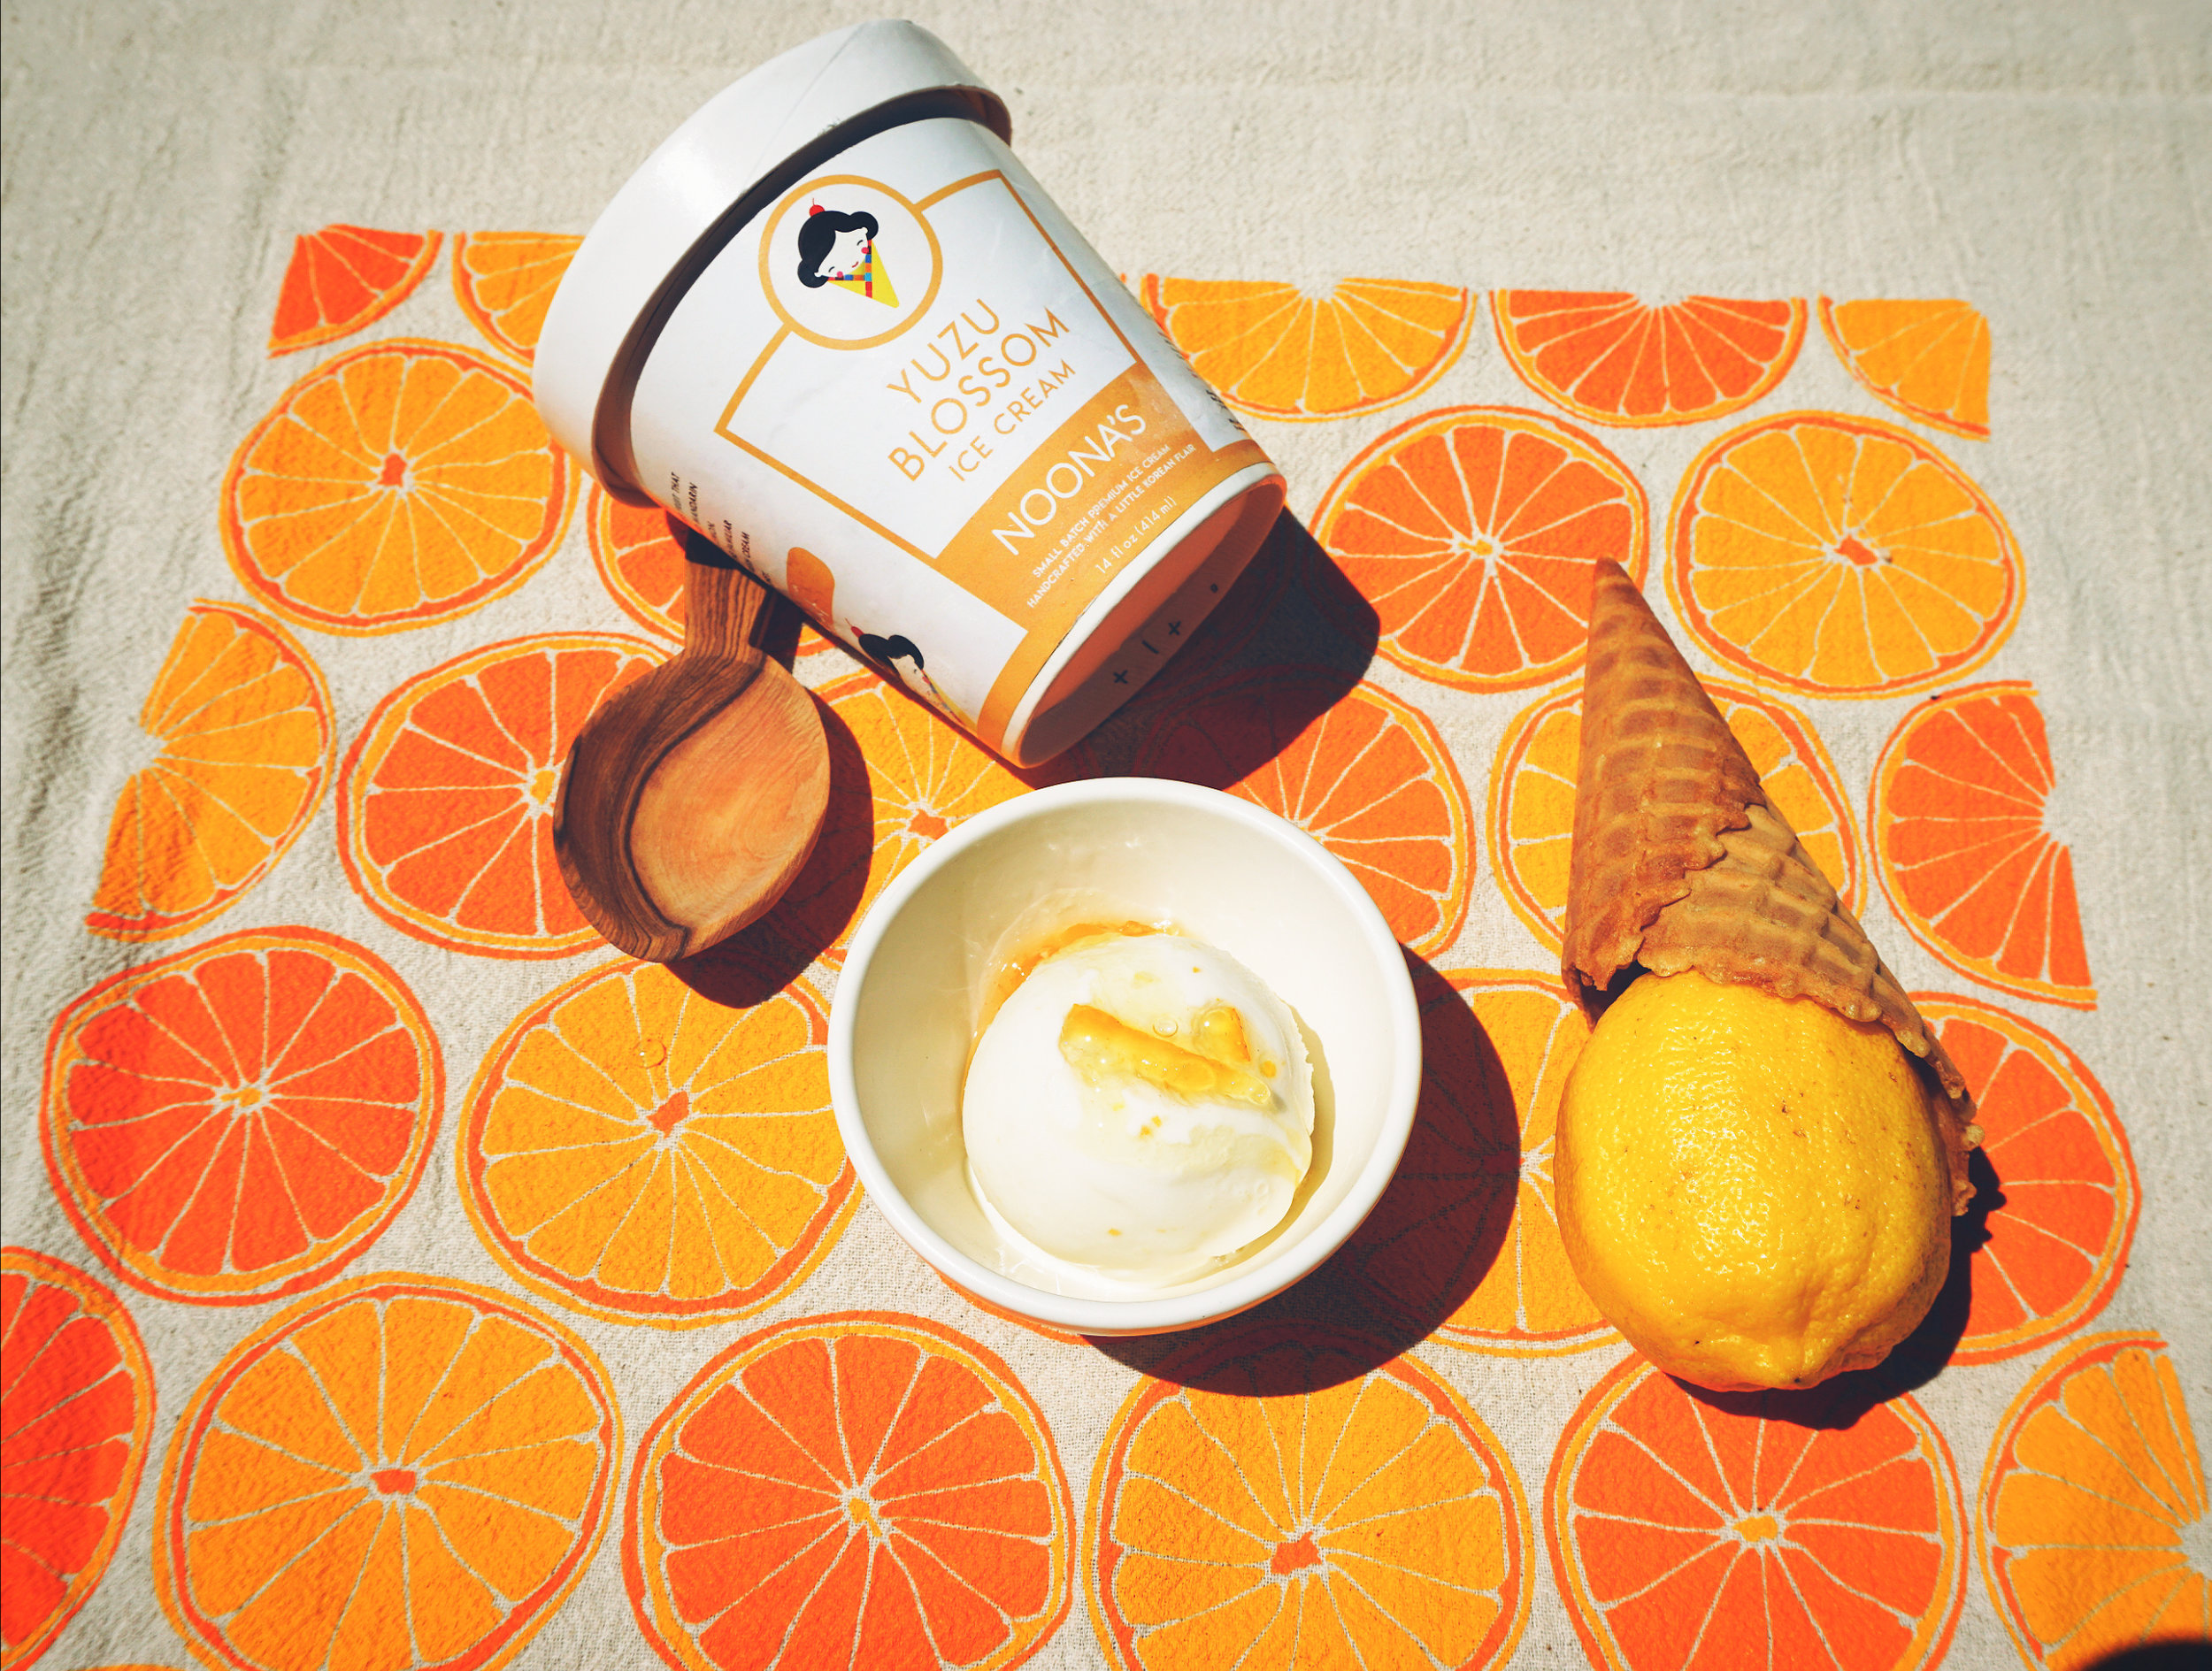 yuzu blossom ice cream - Tart and aromatic, yuzu is an Asian citrus fruit that closely resembles that of a grapefruit and mandarin orange with undertones of meyer lemon. Our Yuzu Blossom ice cream blends the familiar sweetness of this beloved fruit with fresh cream and a touch of wildflower honey.